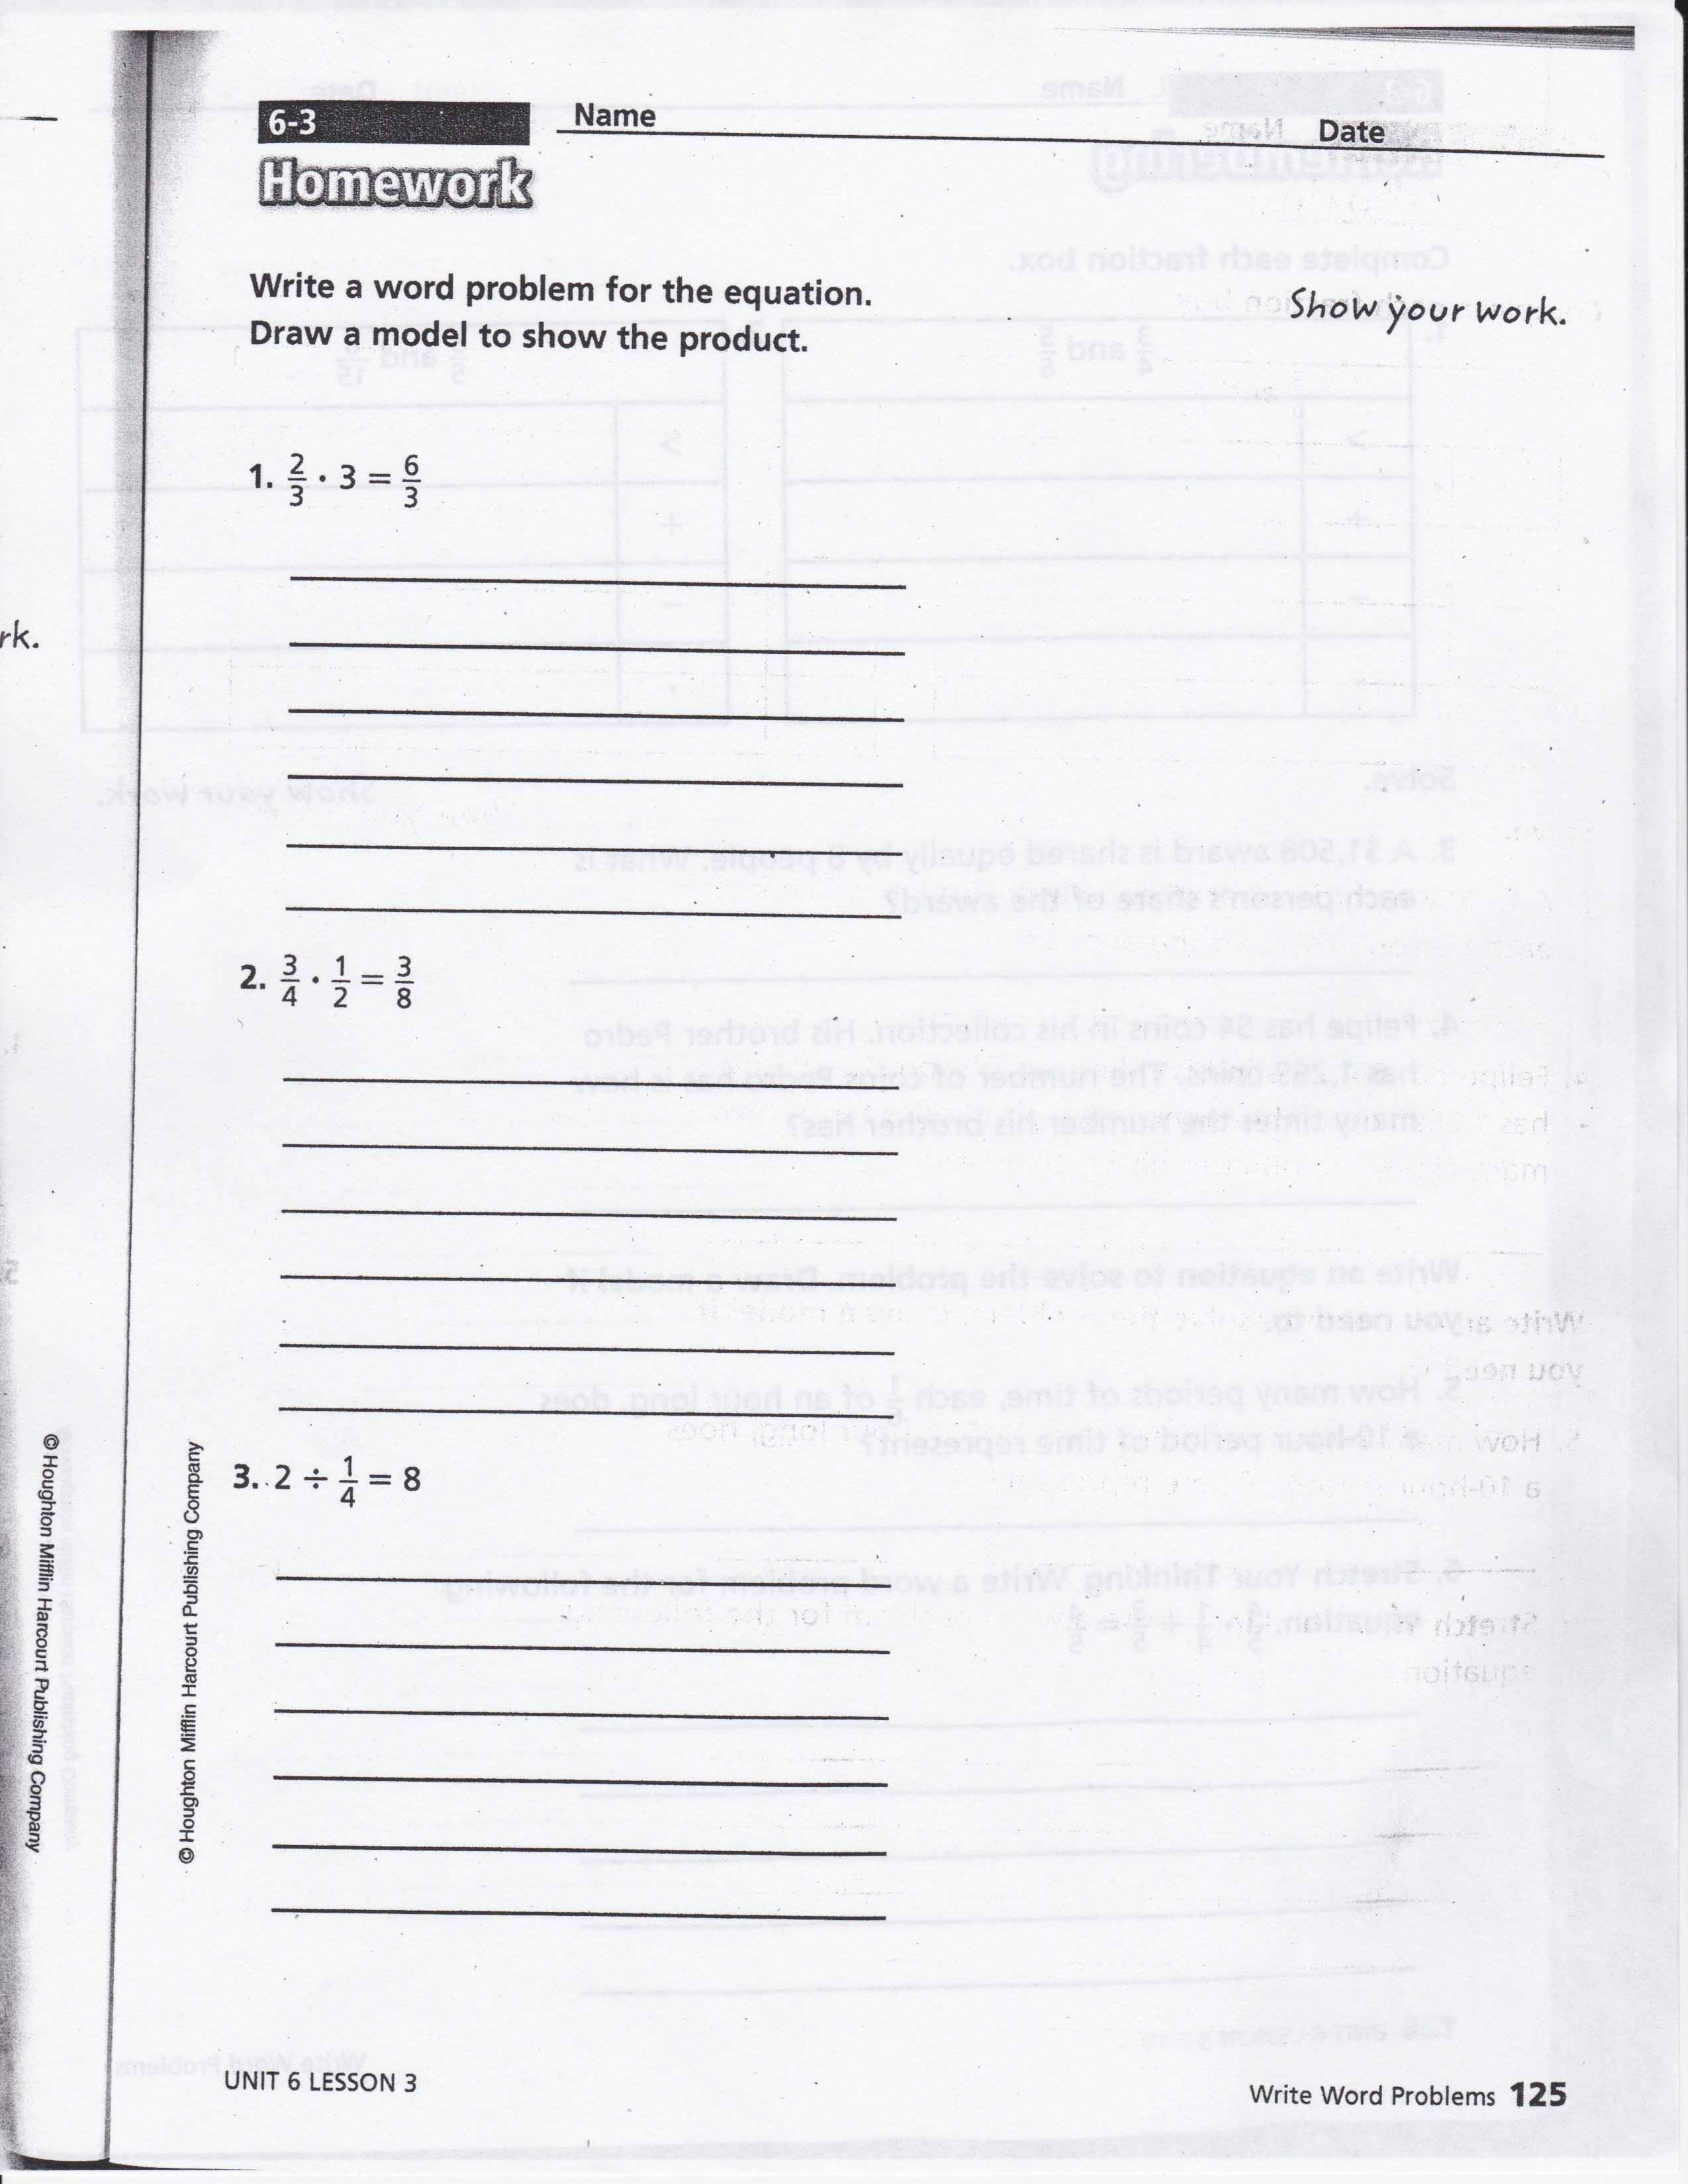 6.3 Biodiversity Worksheet Answers Best Of Deannmoore